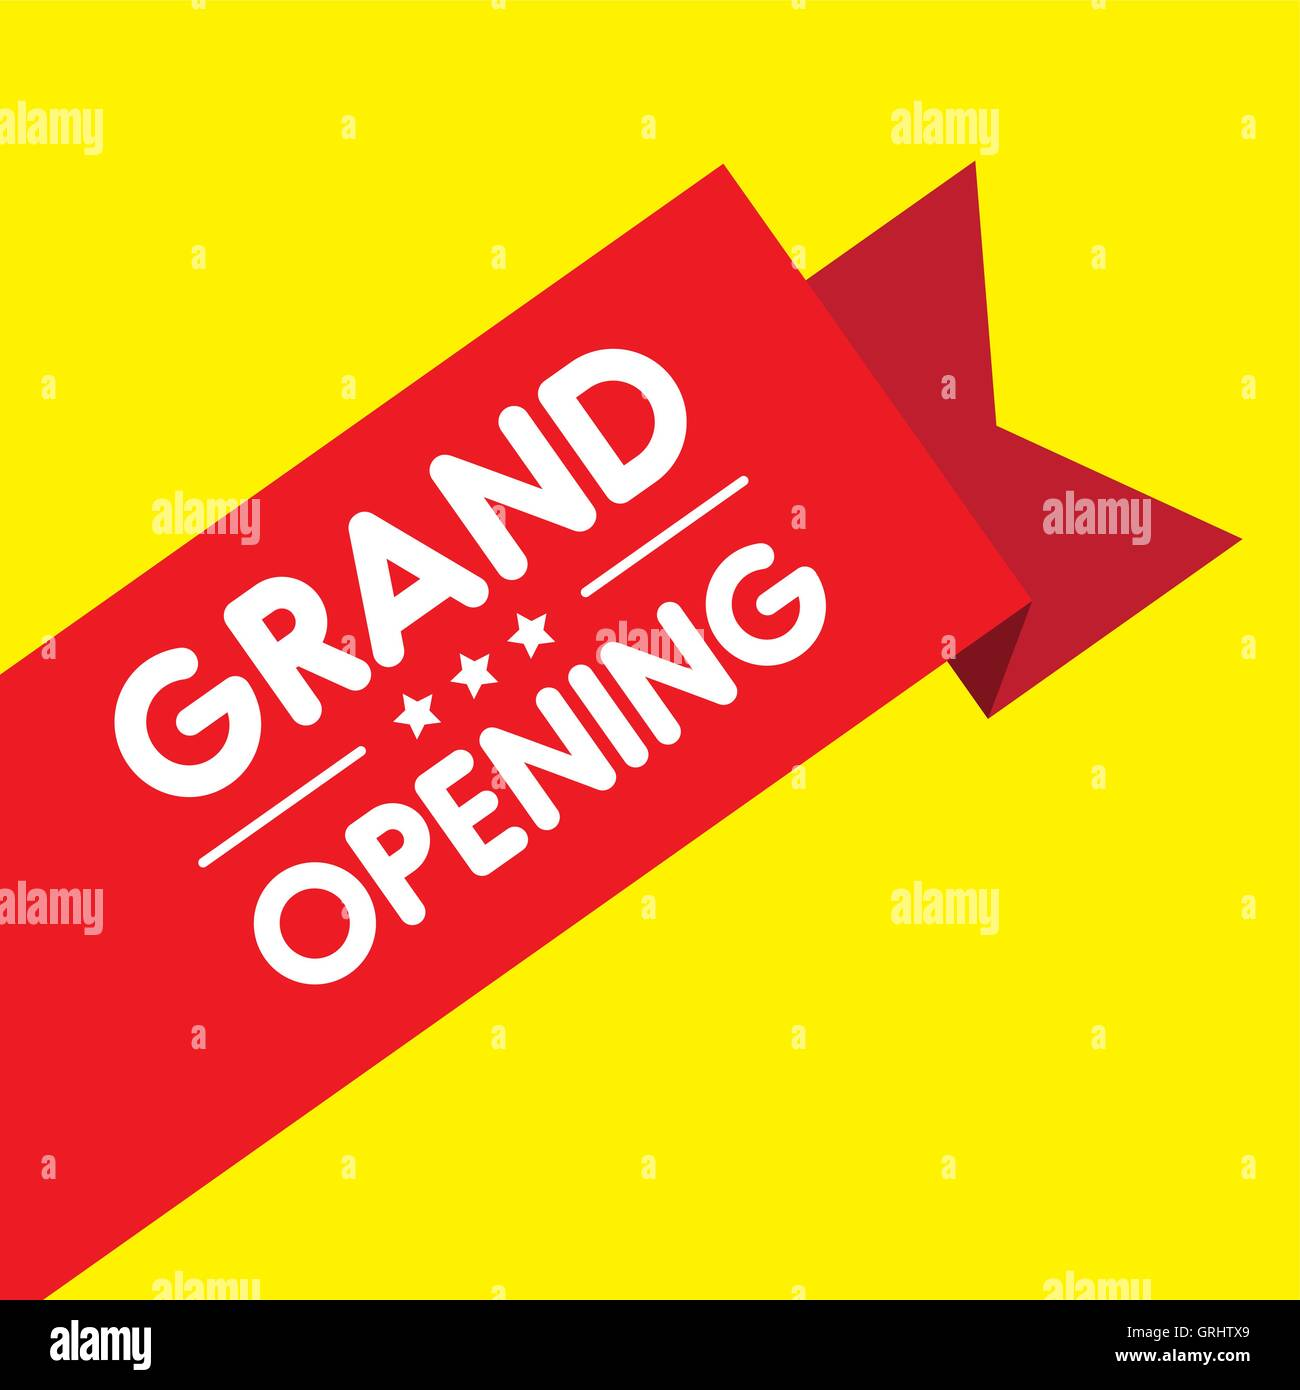 Grand opening invitation label lettering stock vector art grand opening invitation label lettering stopboris Image collections